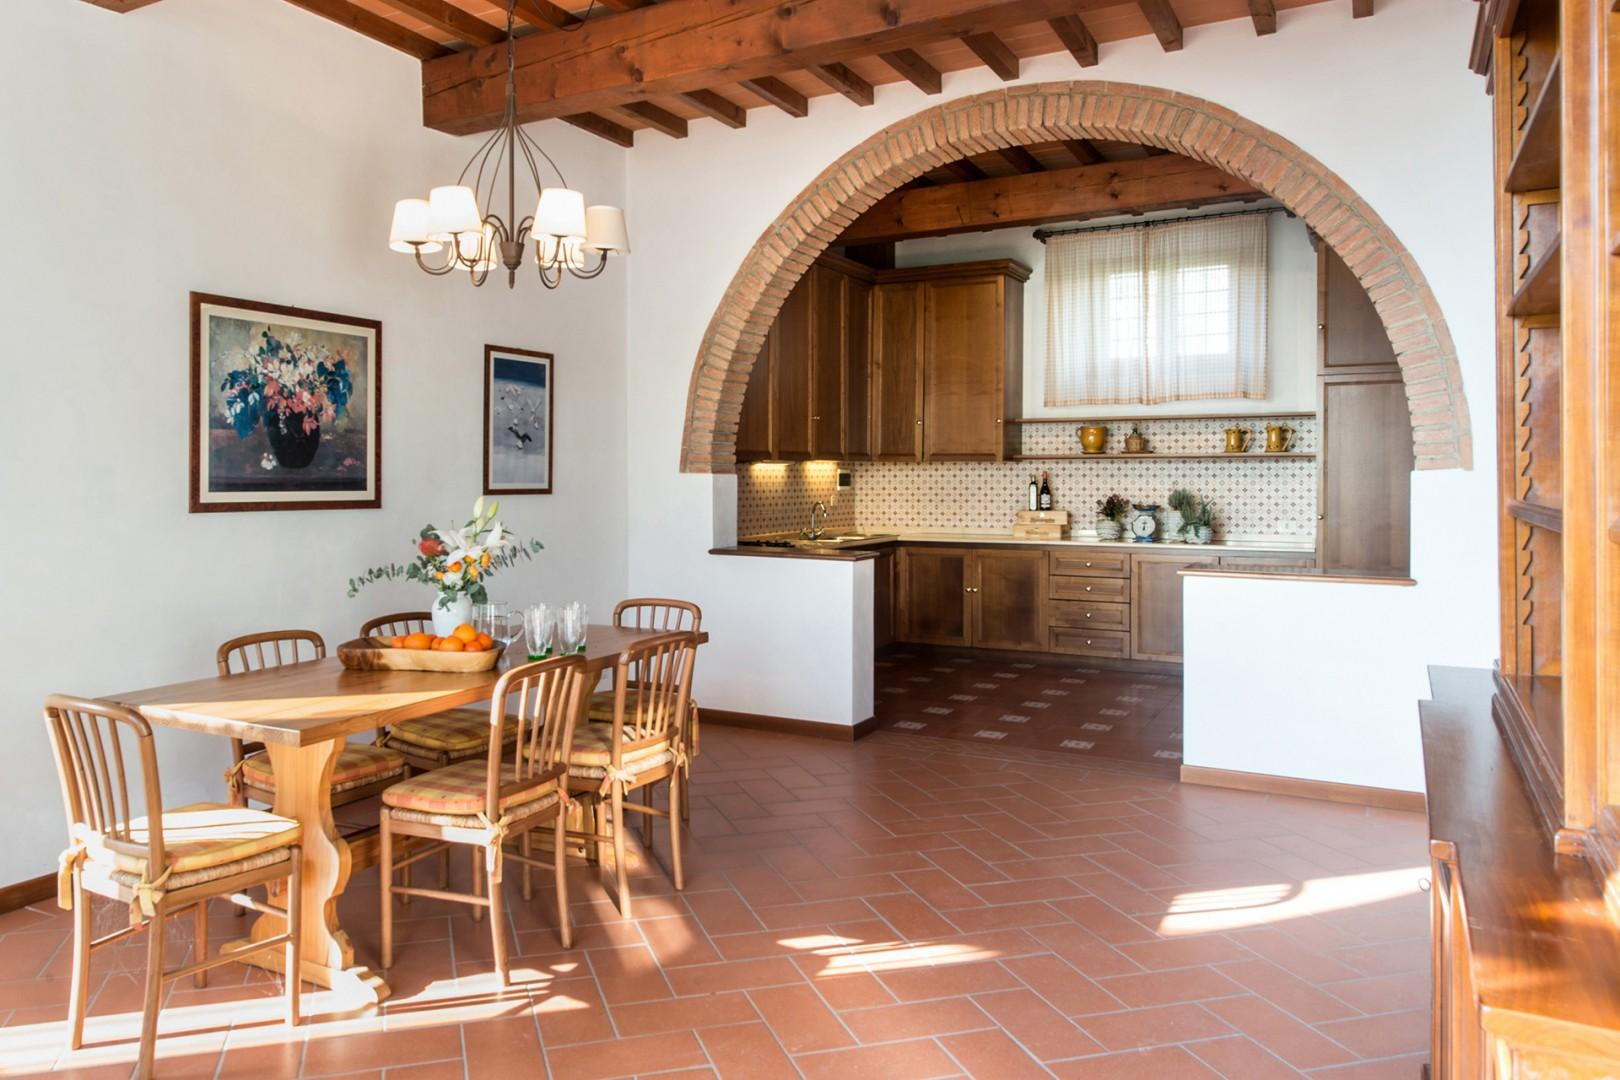 Cottage living and dining area with kitchen.